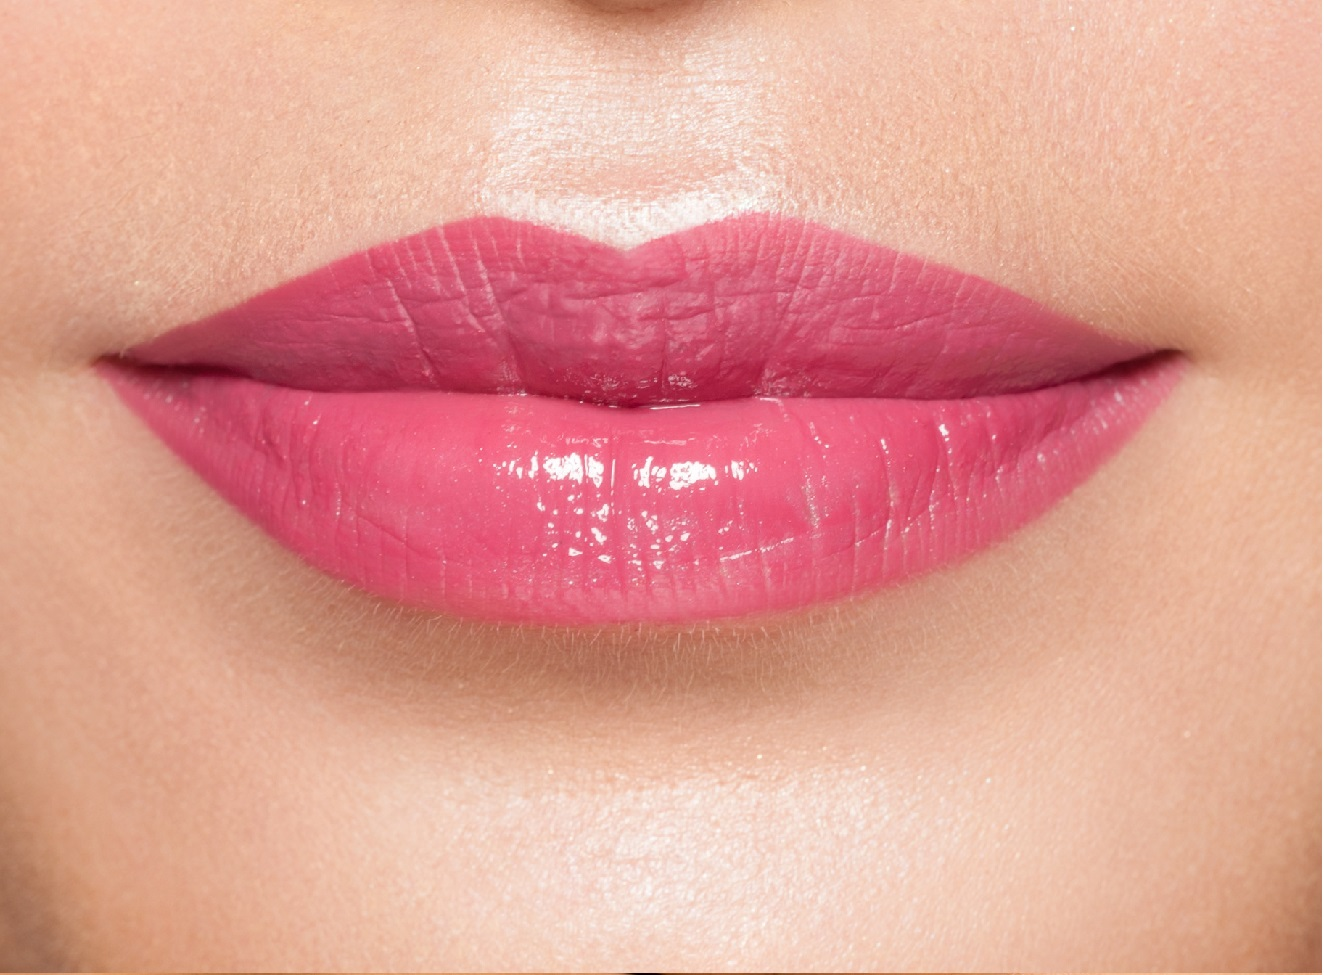 Lip Enhancement | Dr. Peter Abramson | Atlanta, GA